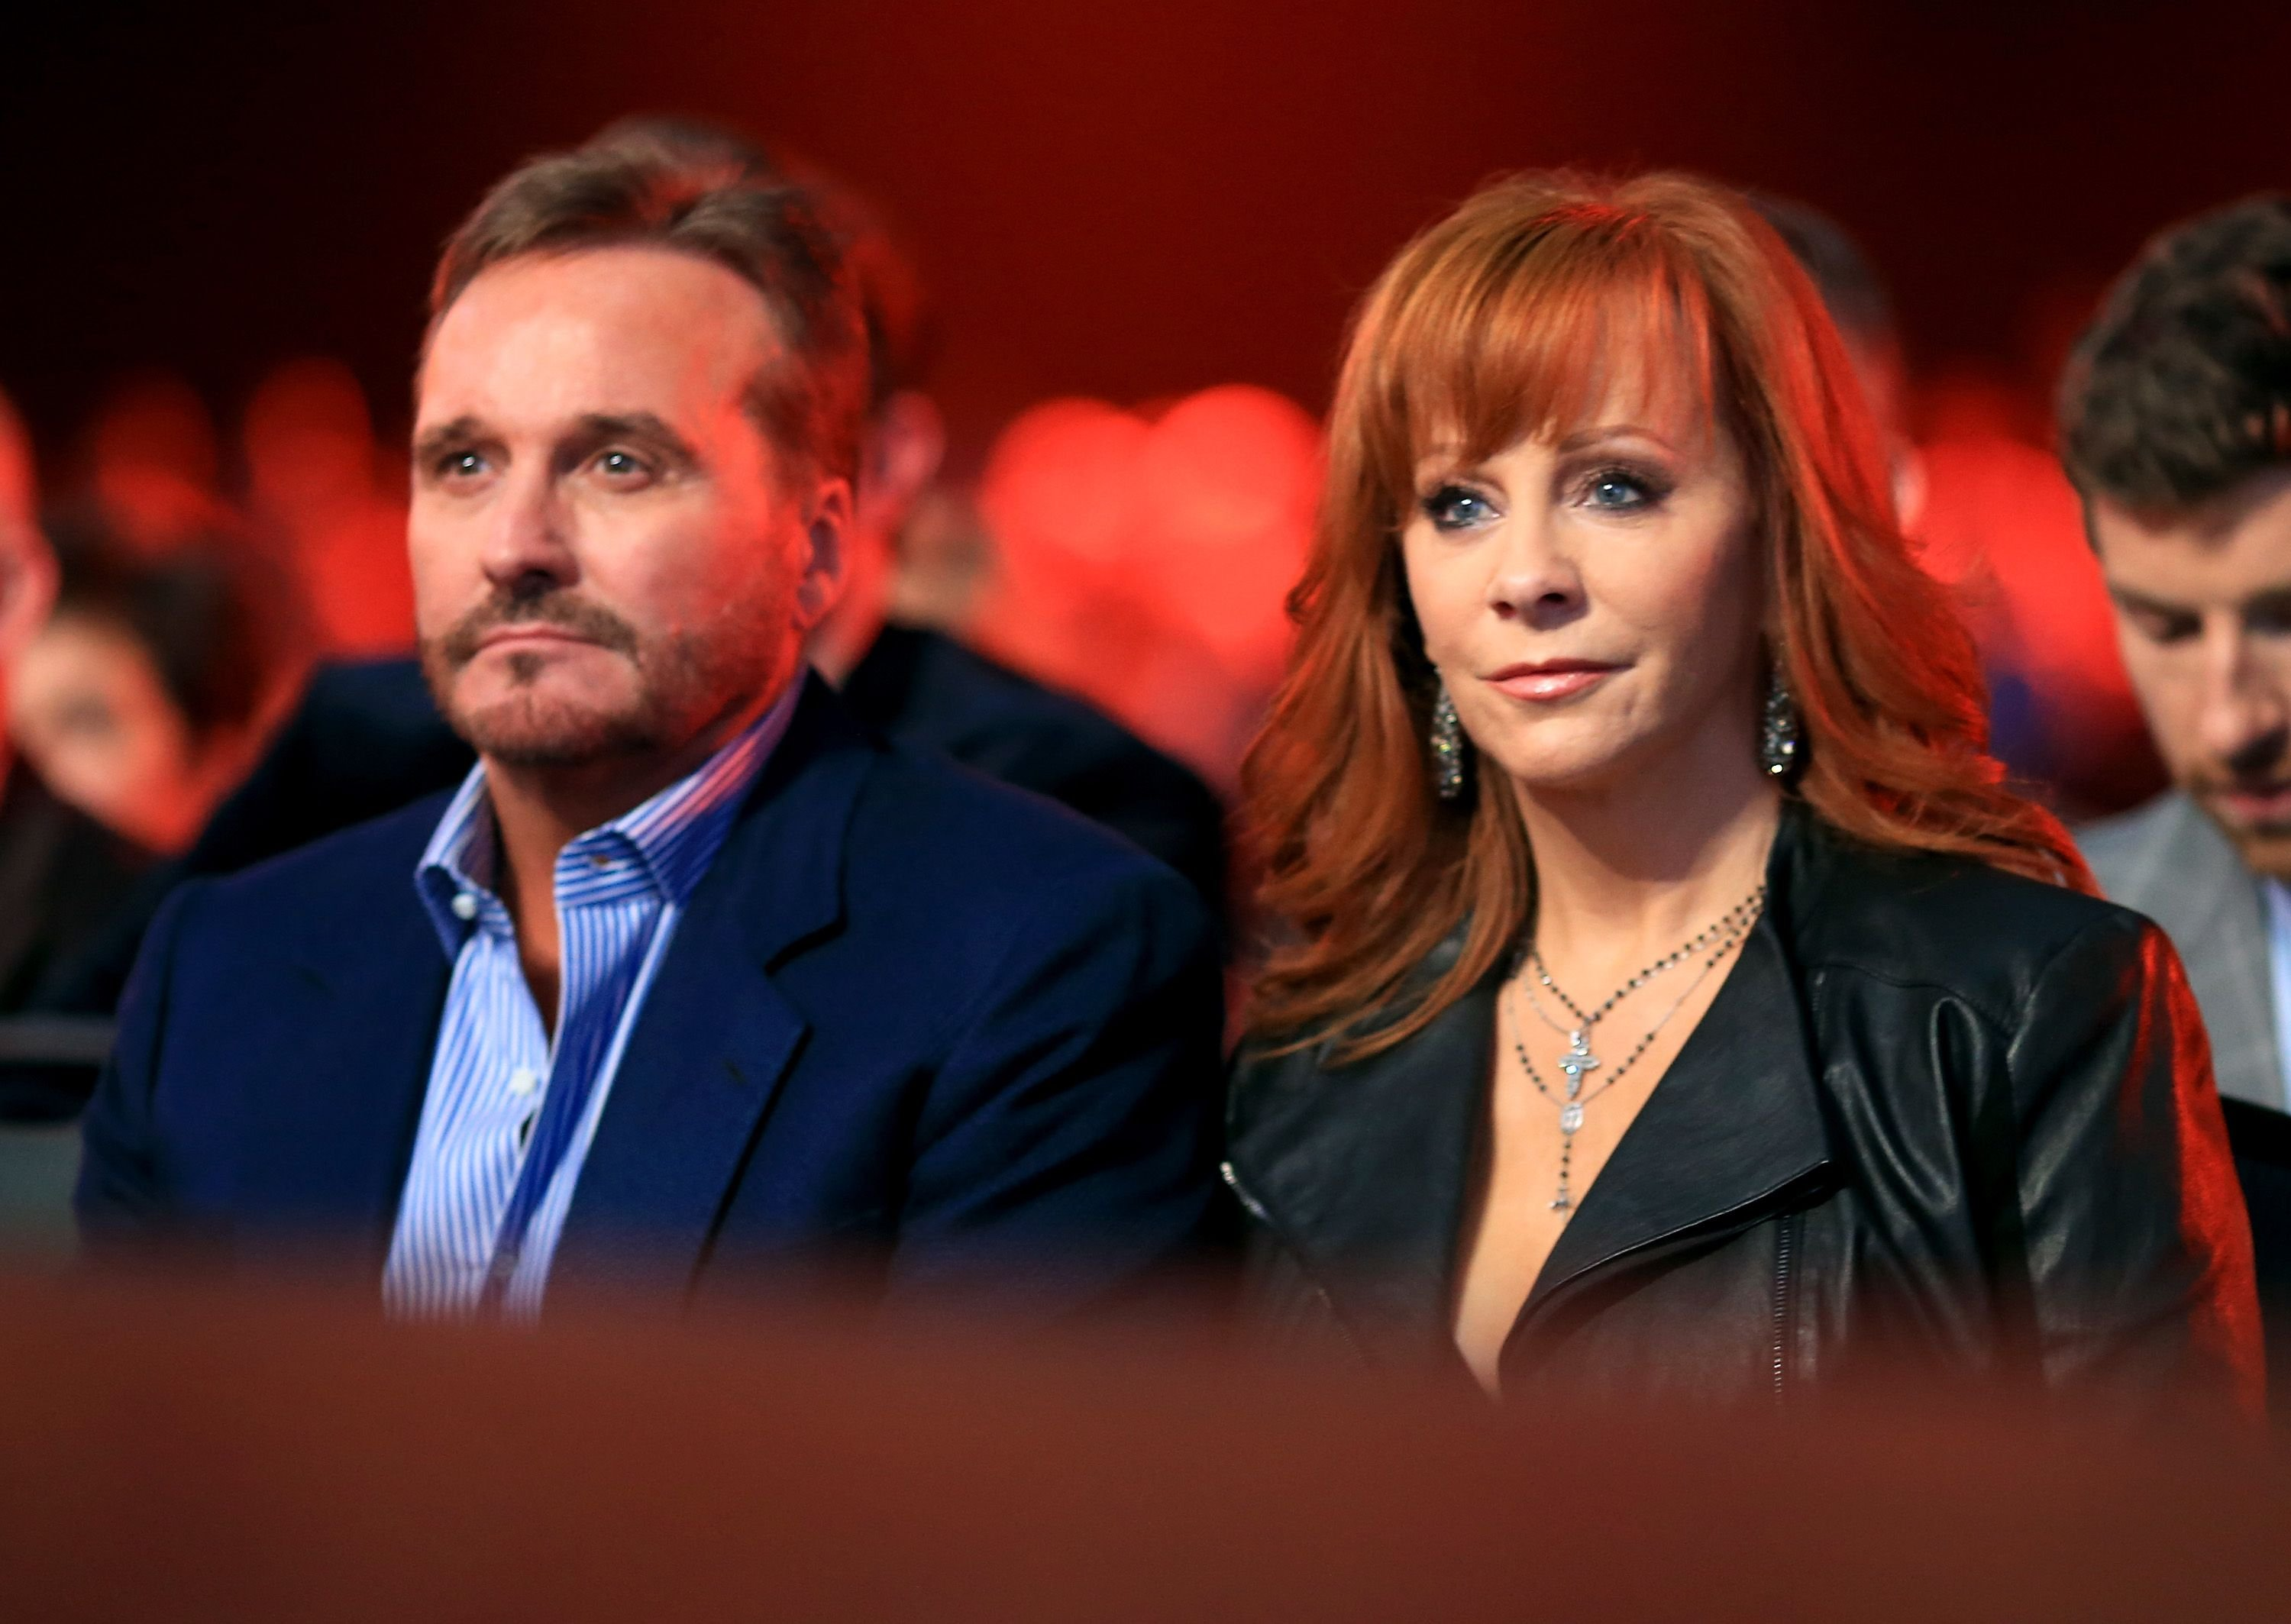 Narvel Blackstock and Reba McEntire at the 2014 American Country Countdown Awards | Source: Getty Images